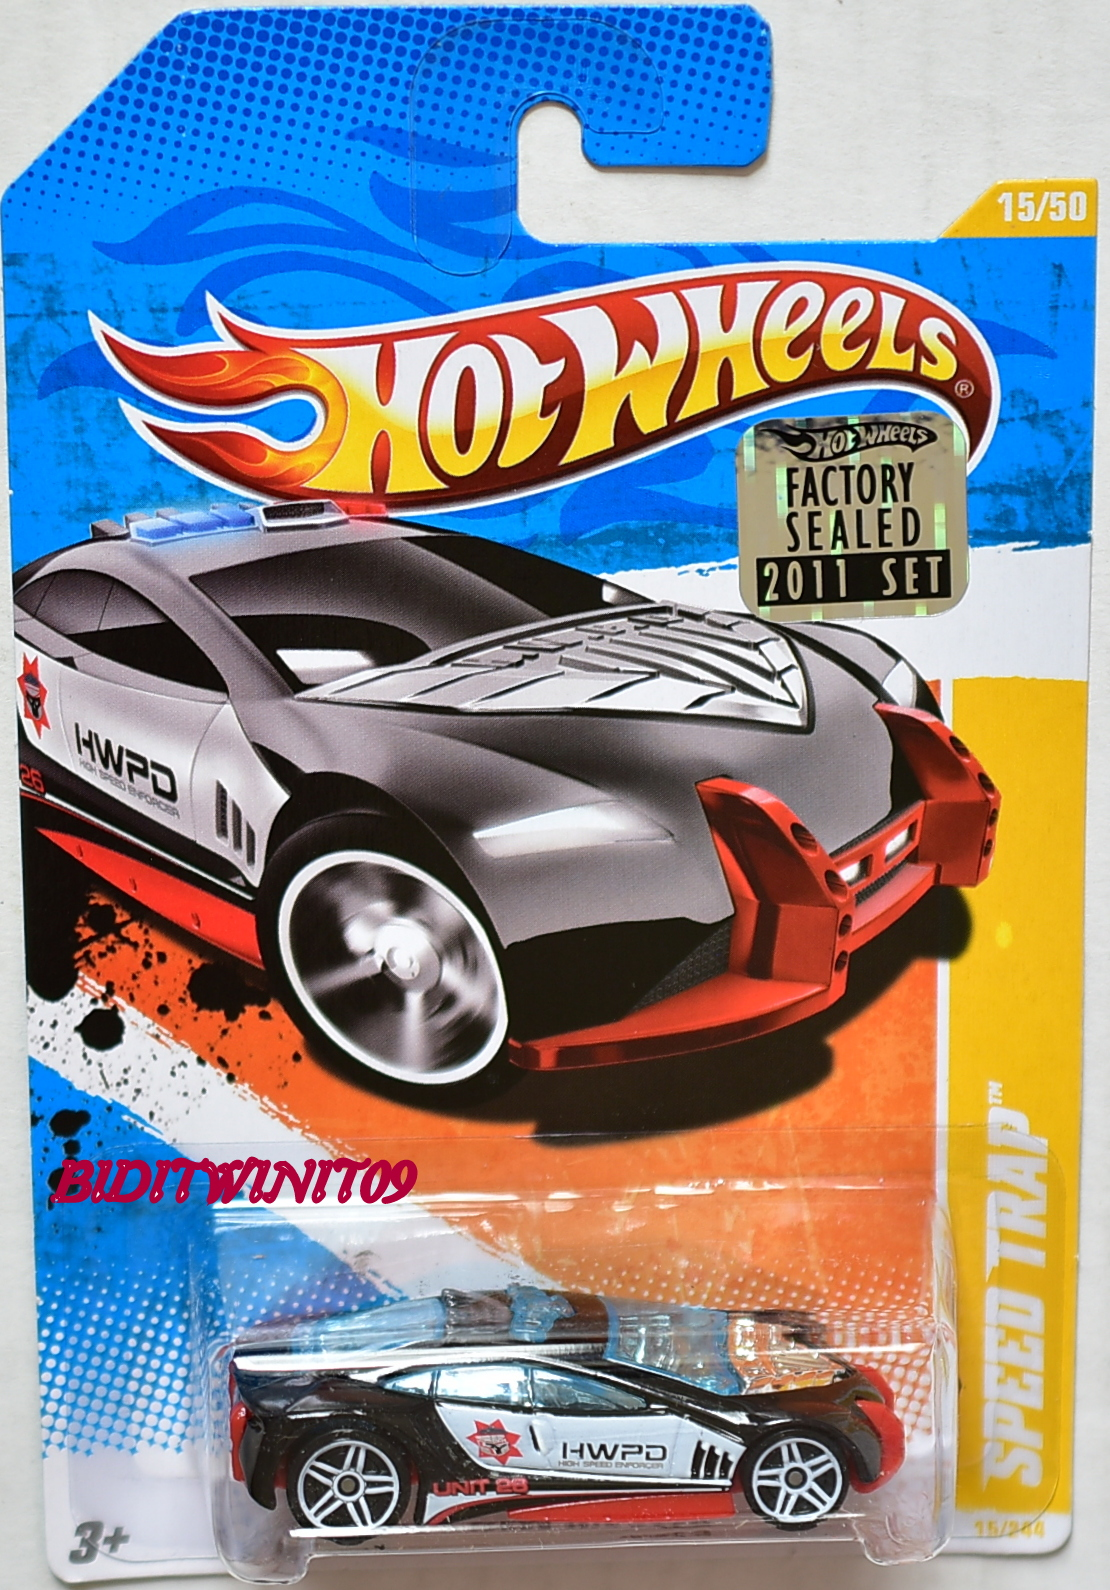 HOT WHEELS 2011 NEW MODELS SPEED TRAP #15/50 BLACK FACTORY SEALED